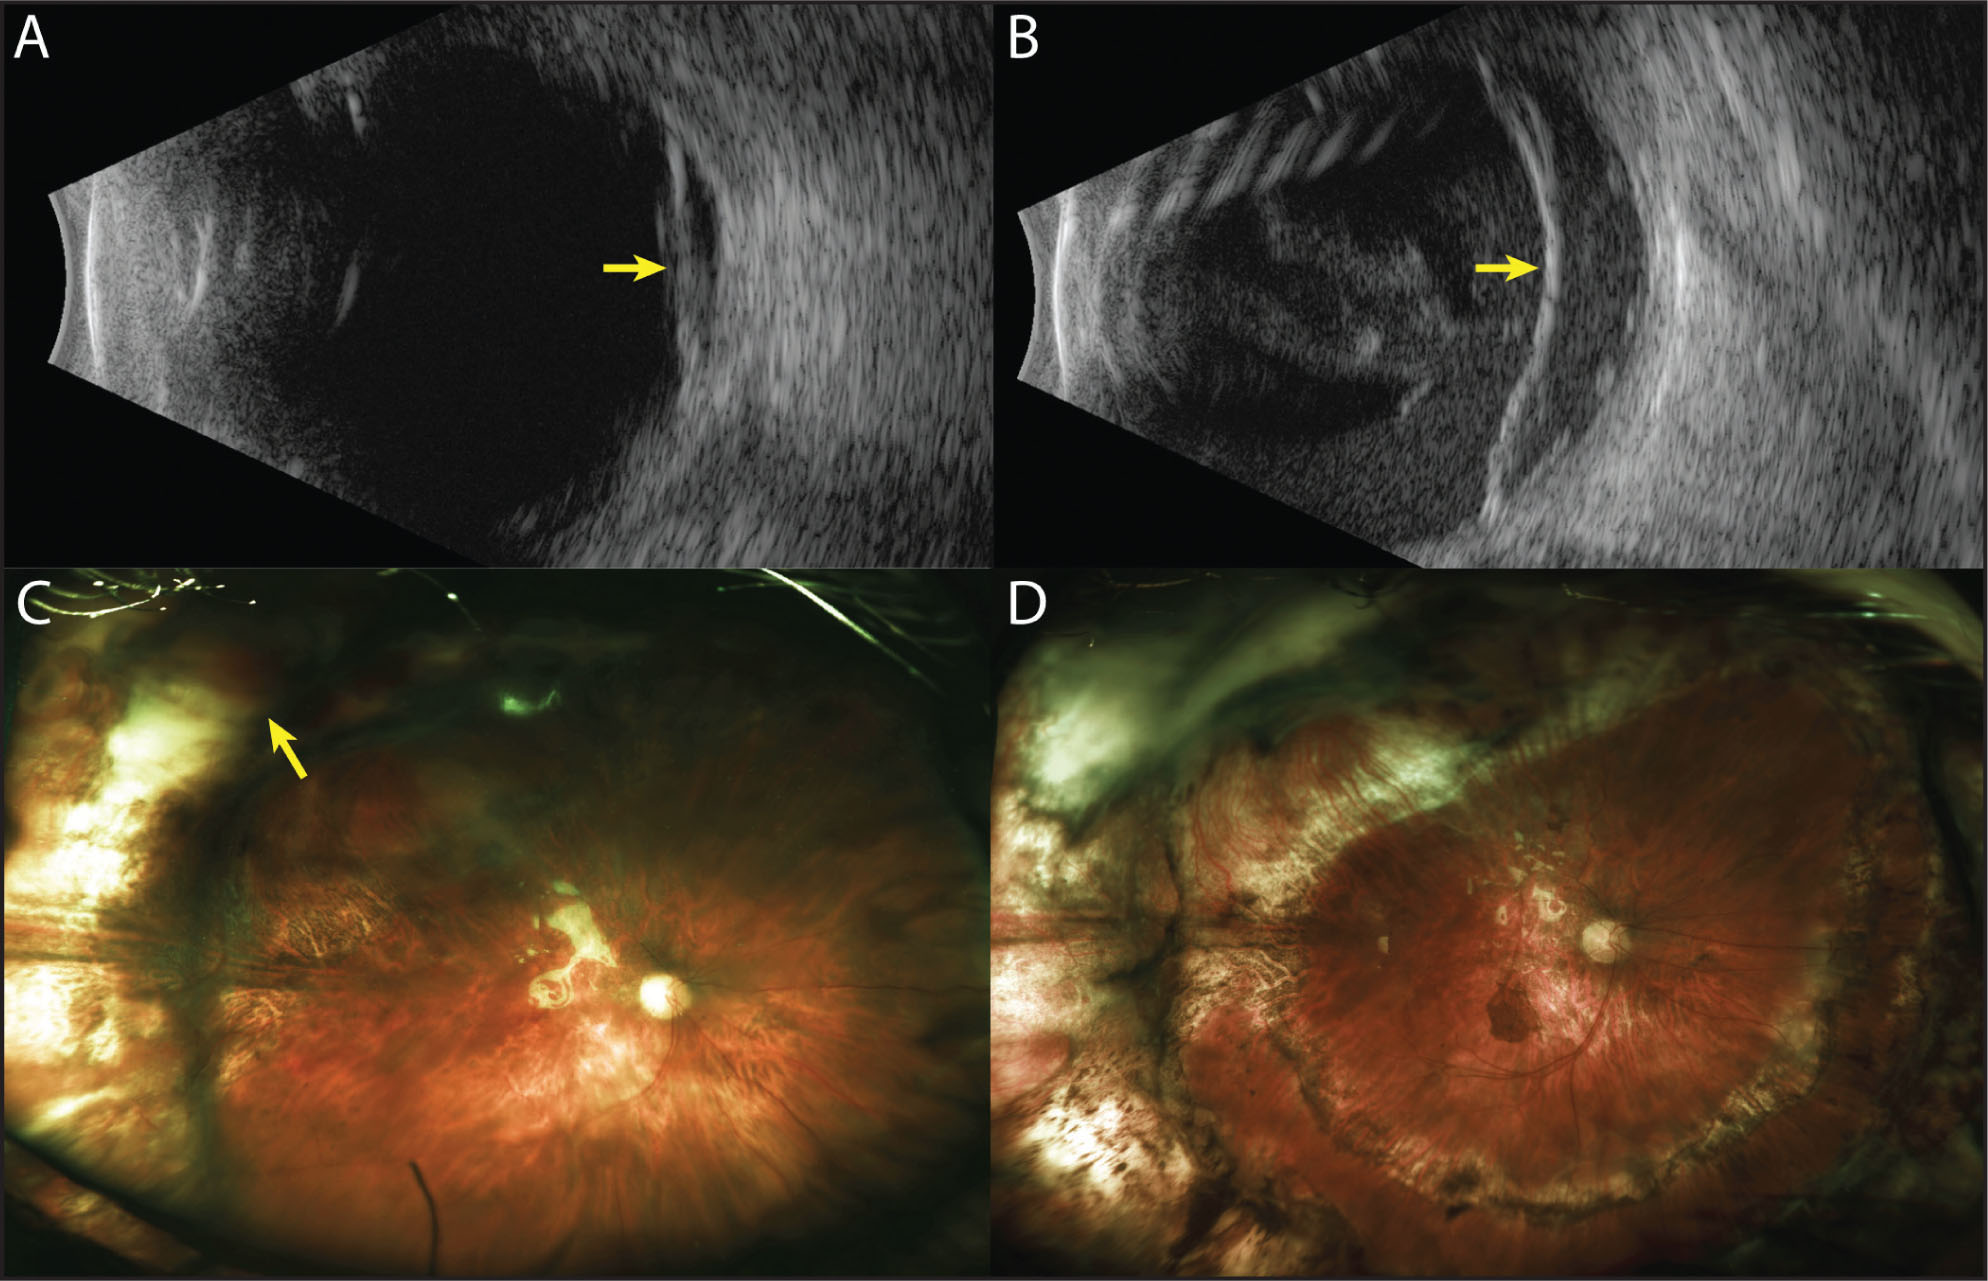 Case 3. (A) B-scan ultrasonography 2 days after the injury shows hyper-reflective material posteriorly (arrow), which on dynamic ultrasonography was most consistent with posterior hyaloid debris or hemorrhage. (B) A retinal detachment has developed 1 week subsequently (arrow). (C) Optos wide-field fundus photography 3 weeks after pars plana vitrectomy (PPV) with superior retinectomy and silicone oil tamponade in combination with a scleral buckle. The yellow arrow denotes the area of traumatic chorioretinal rupture. (D) Wide-field fundus photography 3 months after a repeat PPV with inferior retinectomy and silicone oil tamponade.